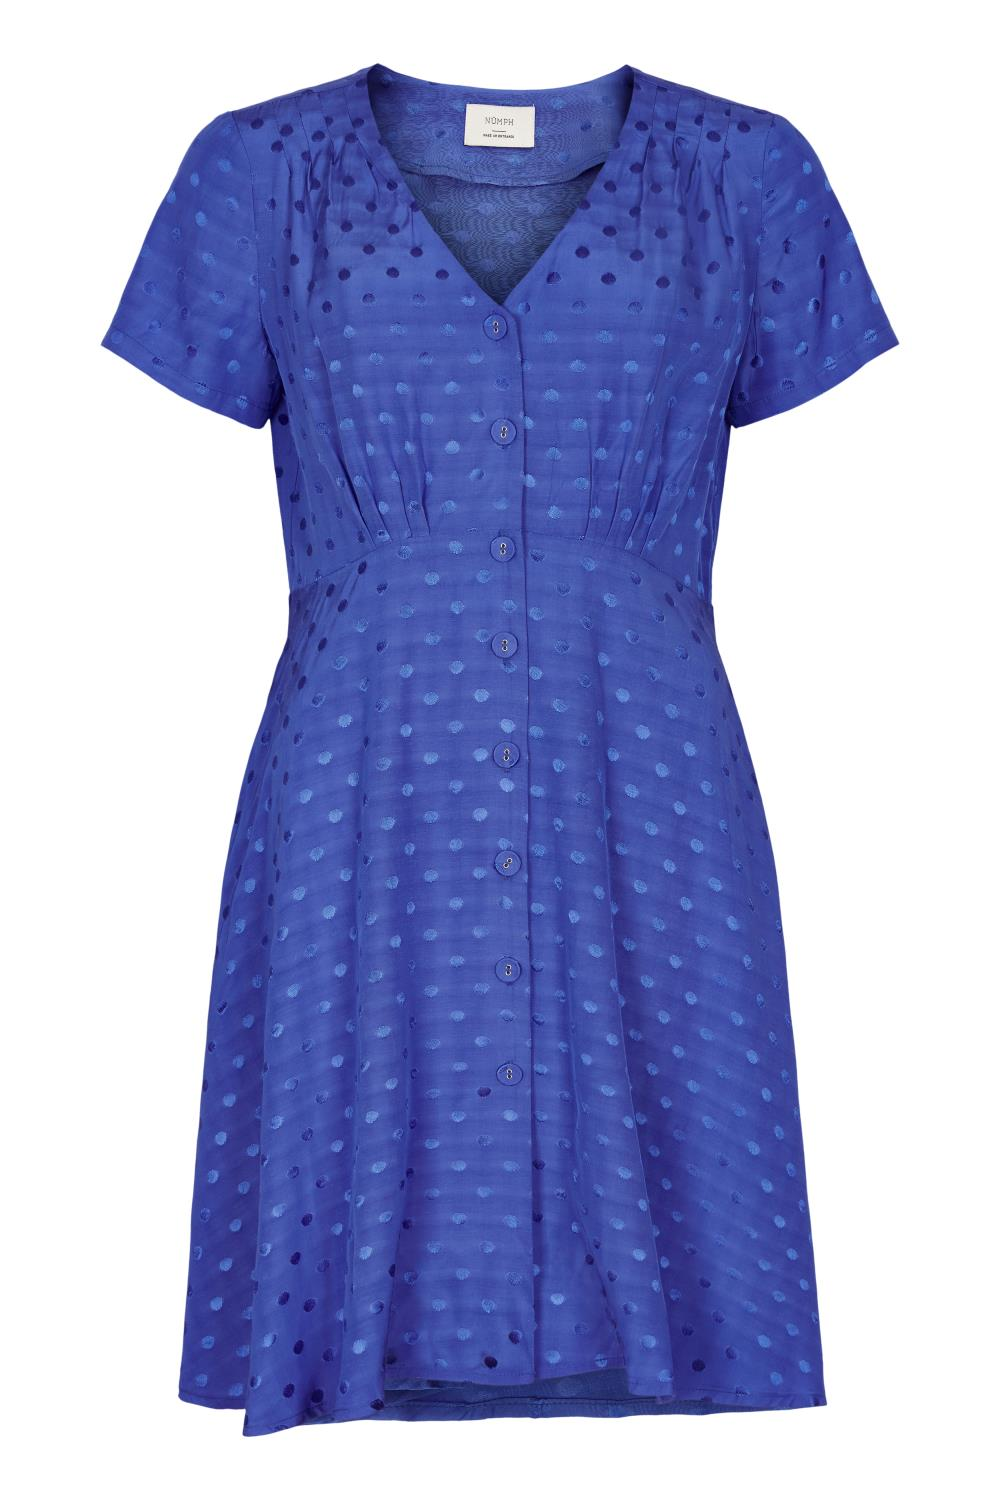 Nümph Brandall dress, daz.blue